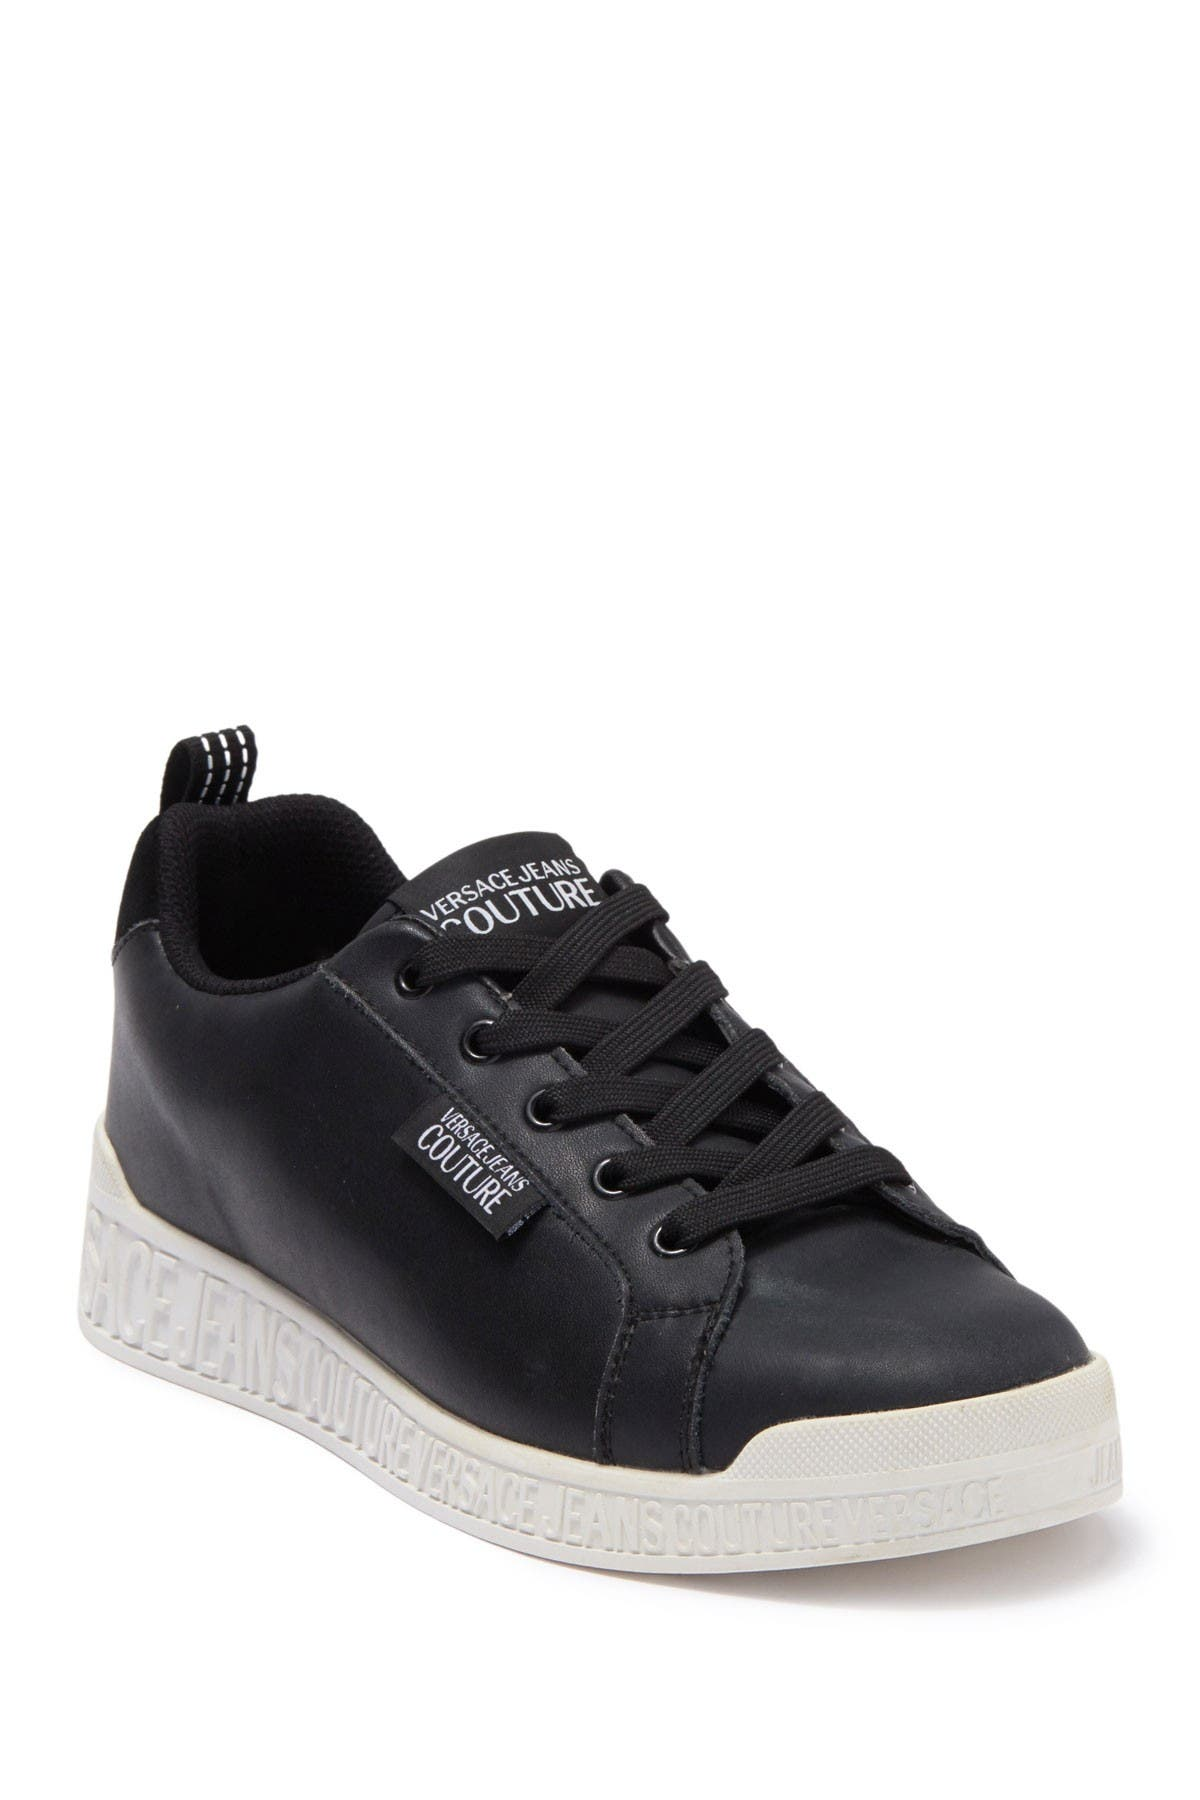 Image of Versace Jeans Leather Sneaker